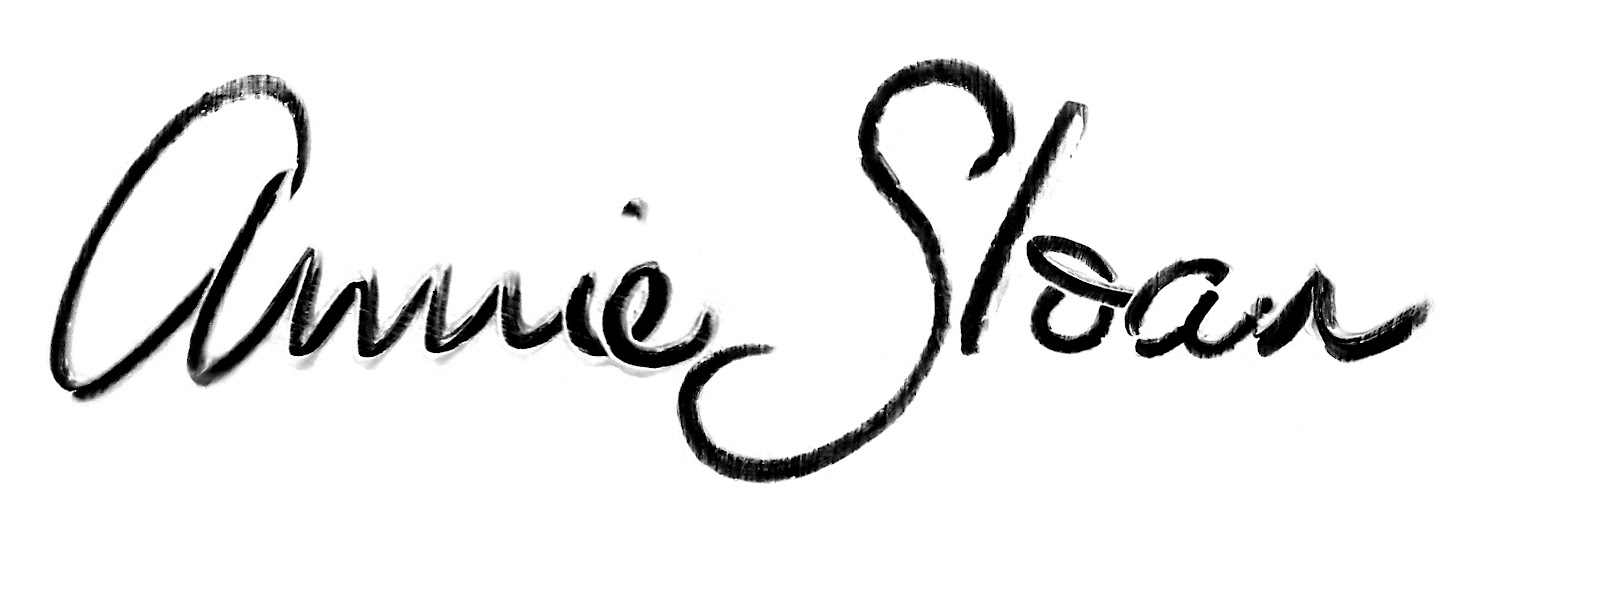 annie sloan logo - photo #20